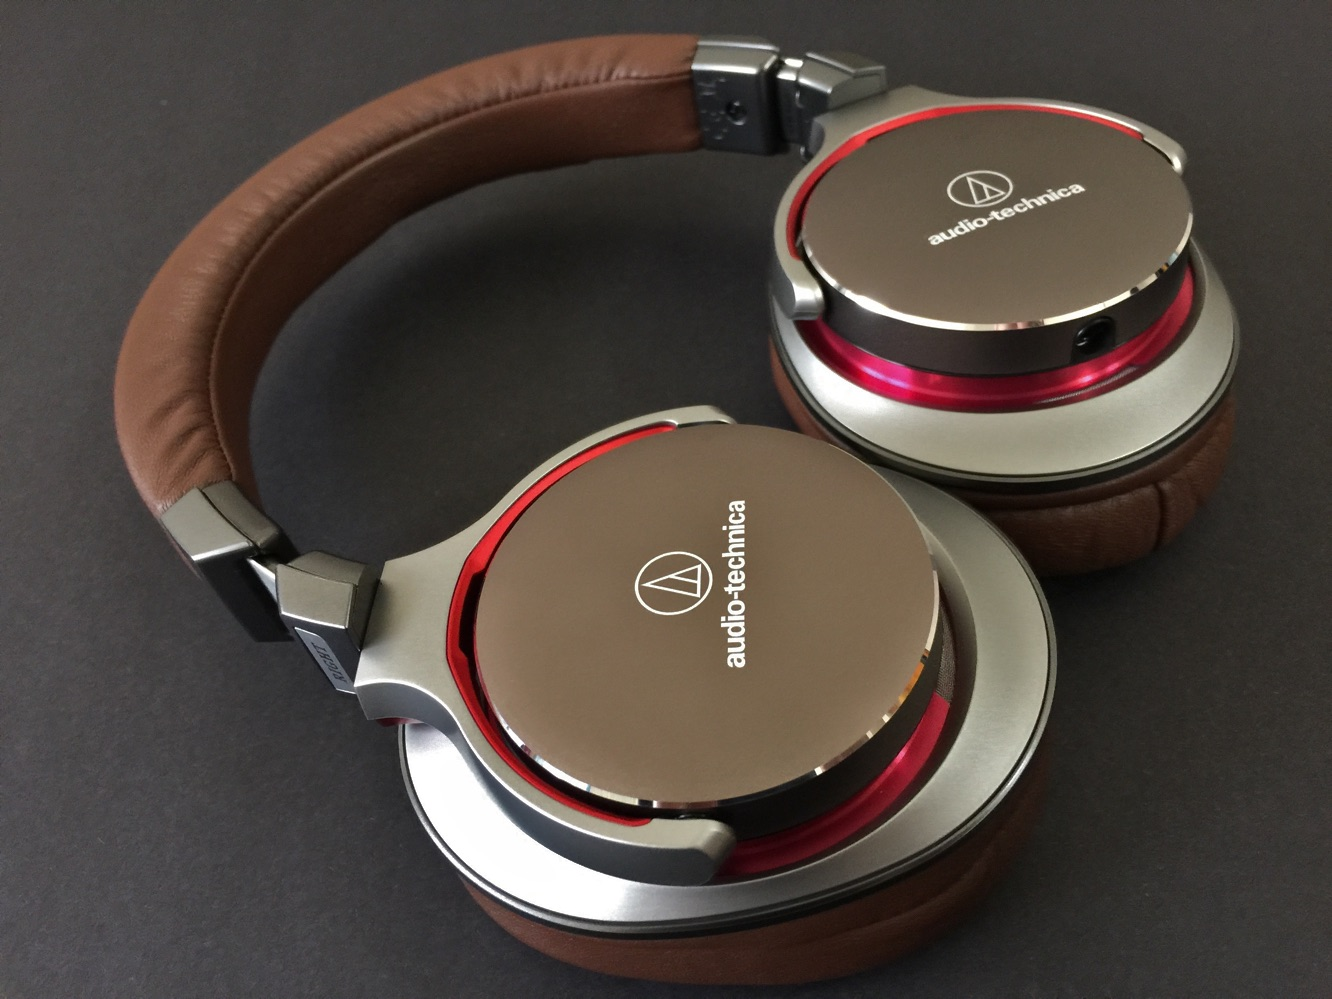 Review: Audio-Technica ATH-MSR7 SonicPro Over-Ear Headphones 1